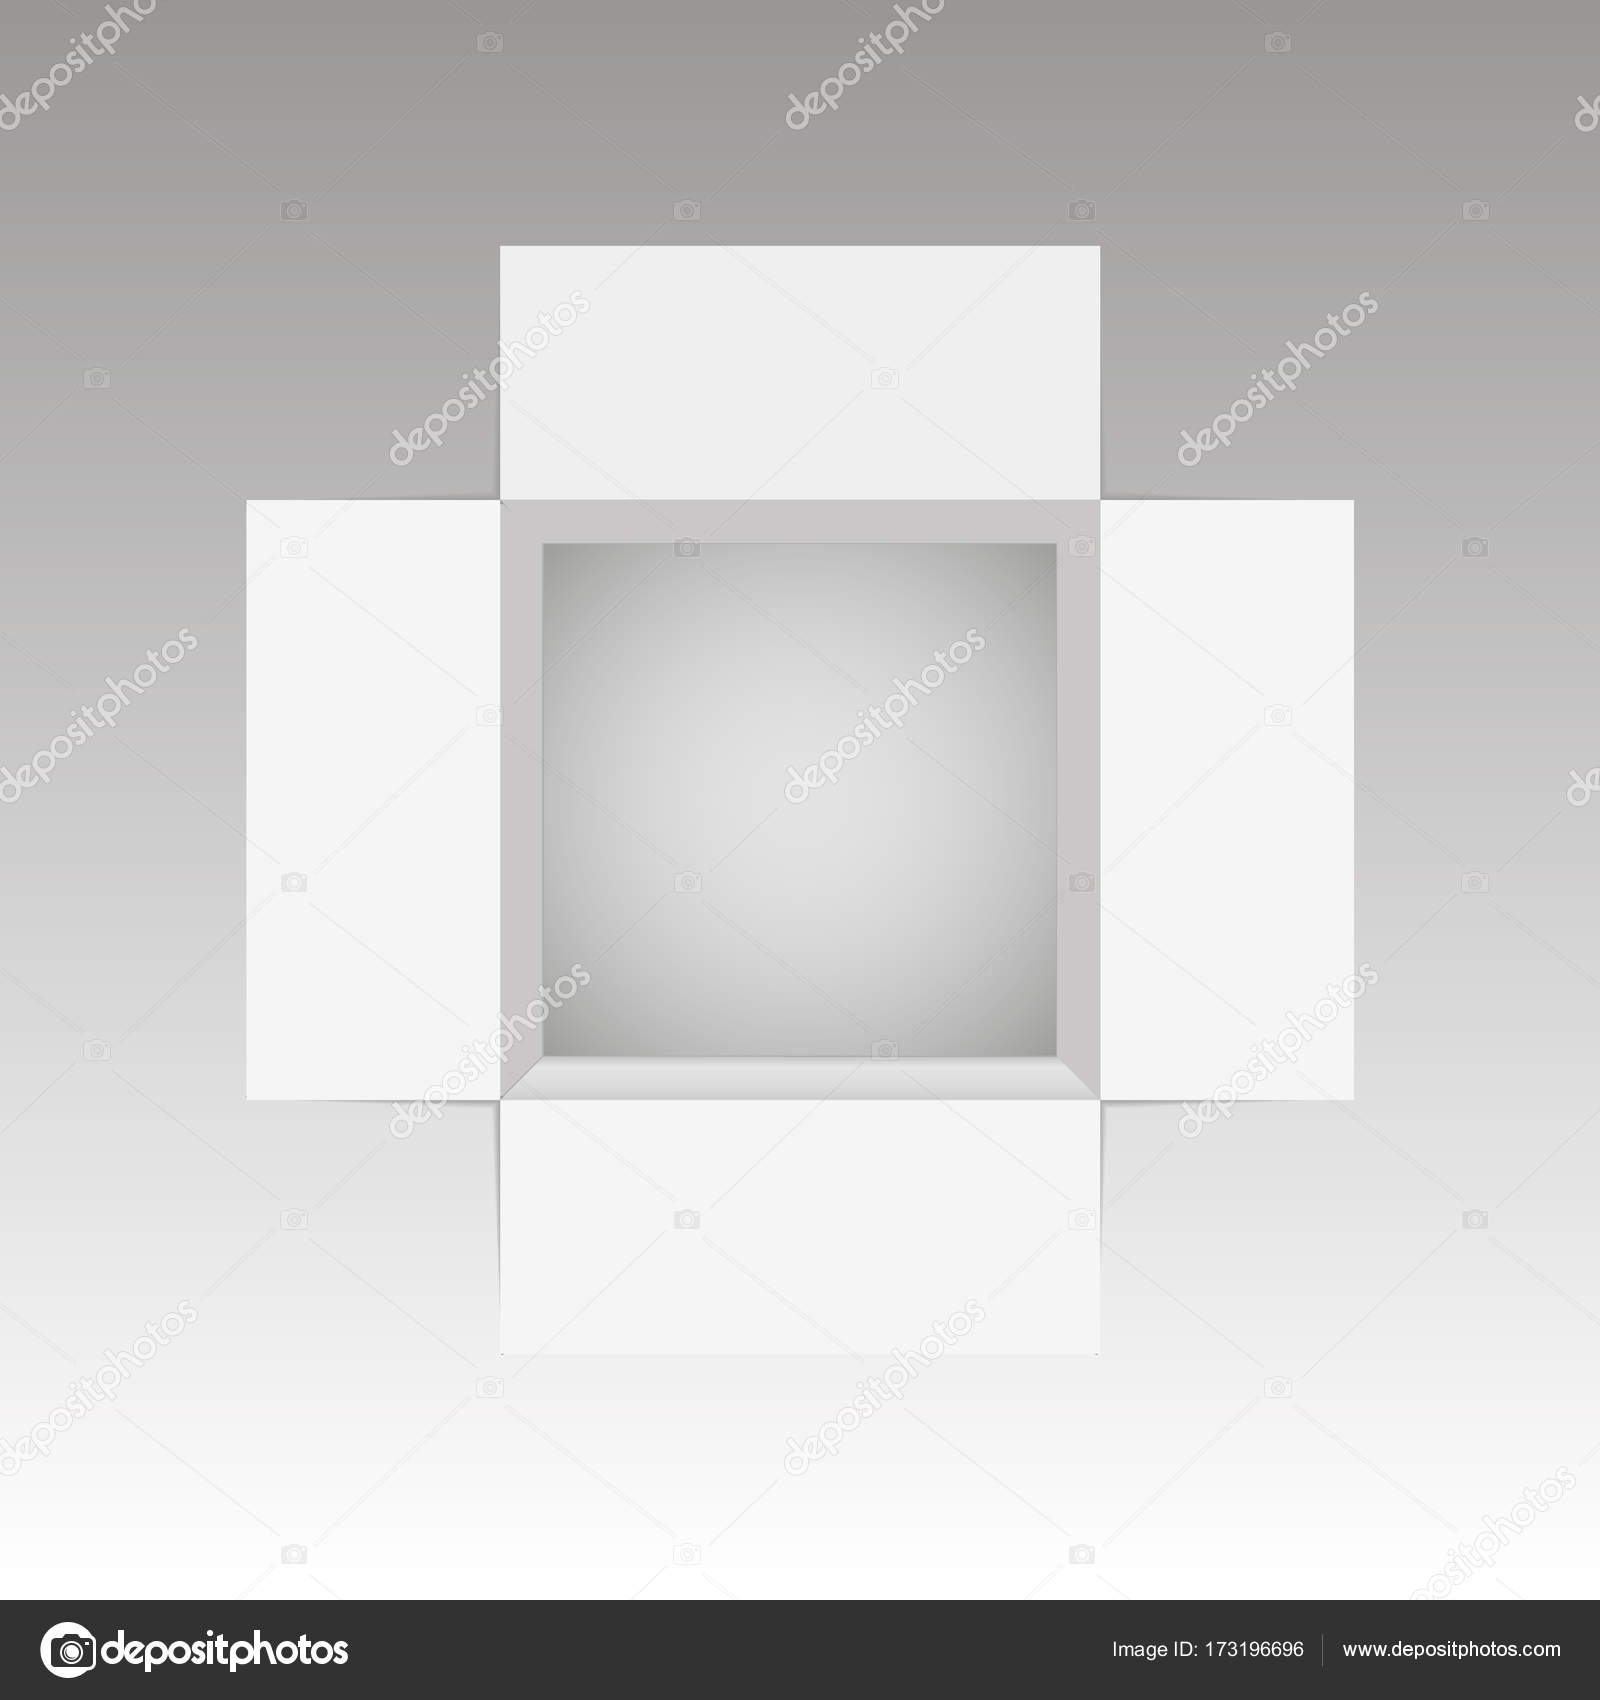 Top View Of Open Box Mockup Template Vector Illustration Stock